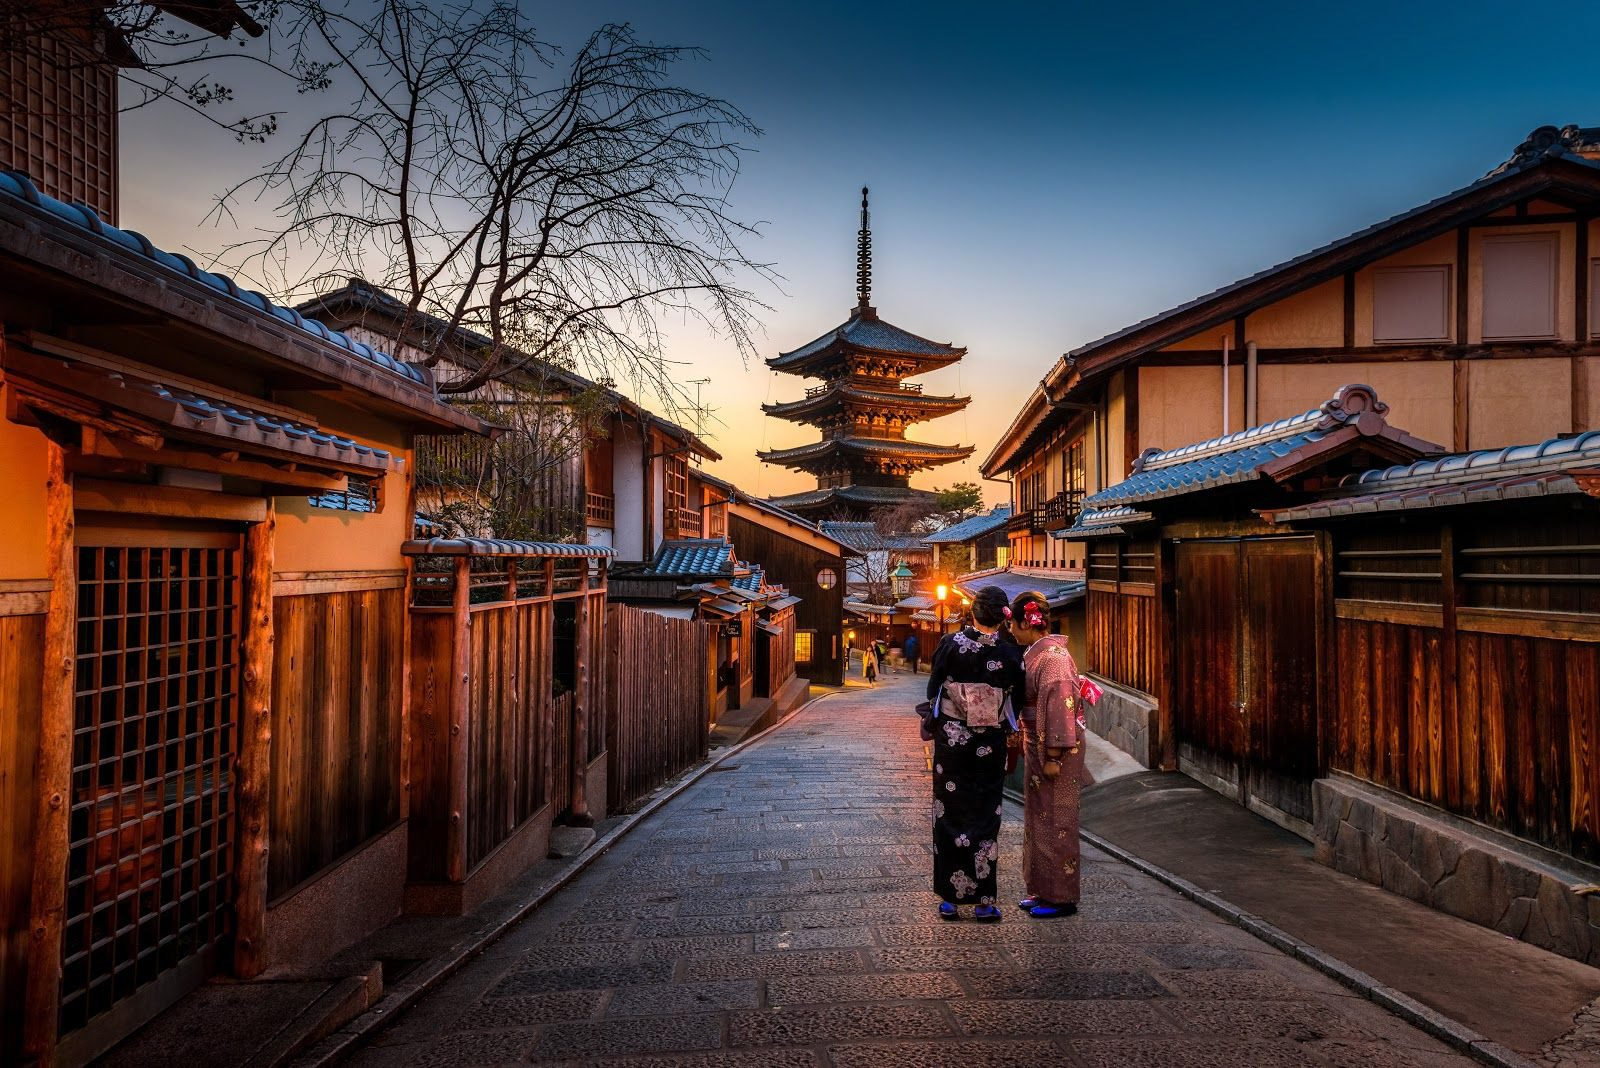 street in Japan with old style building and two geishas walking